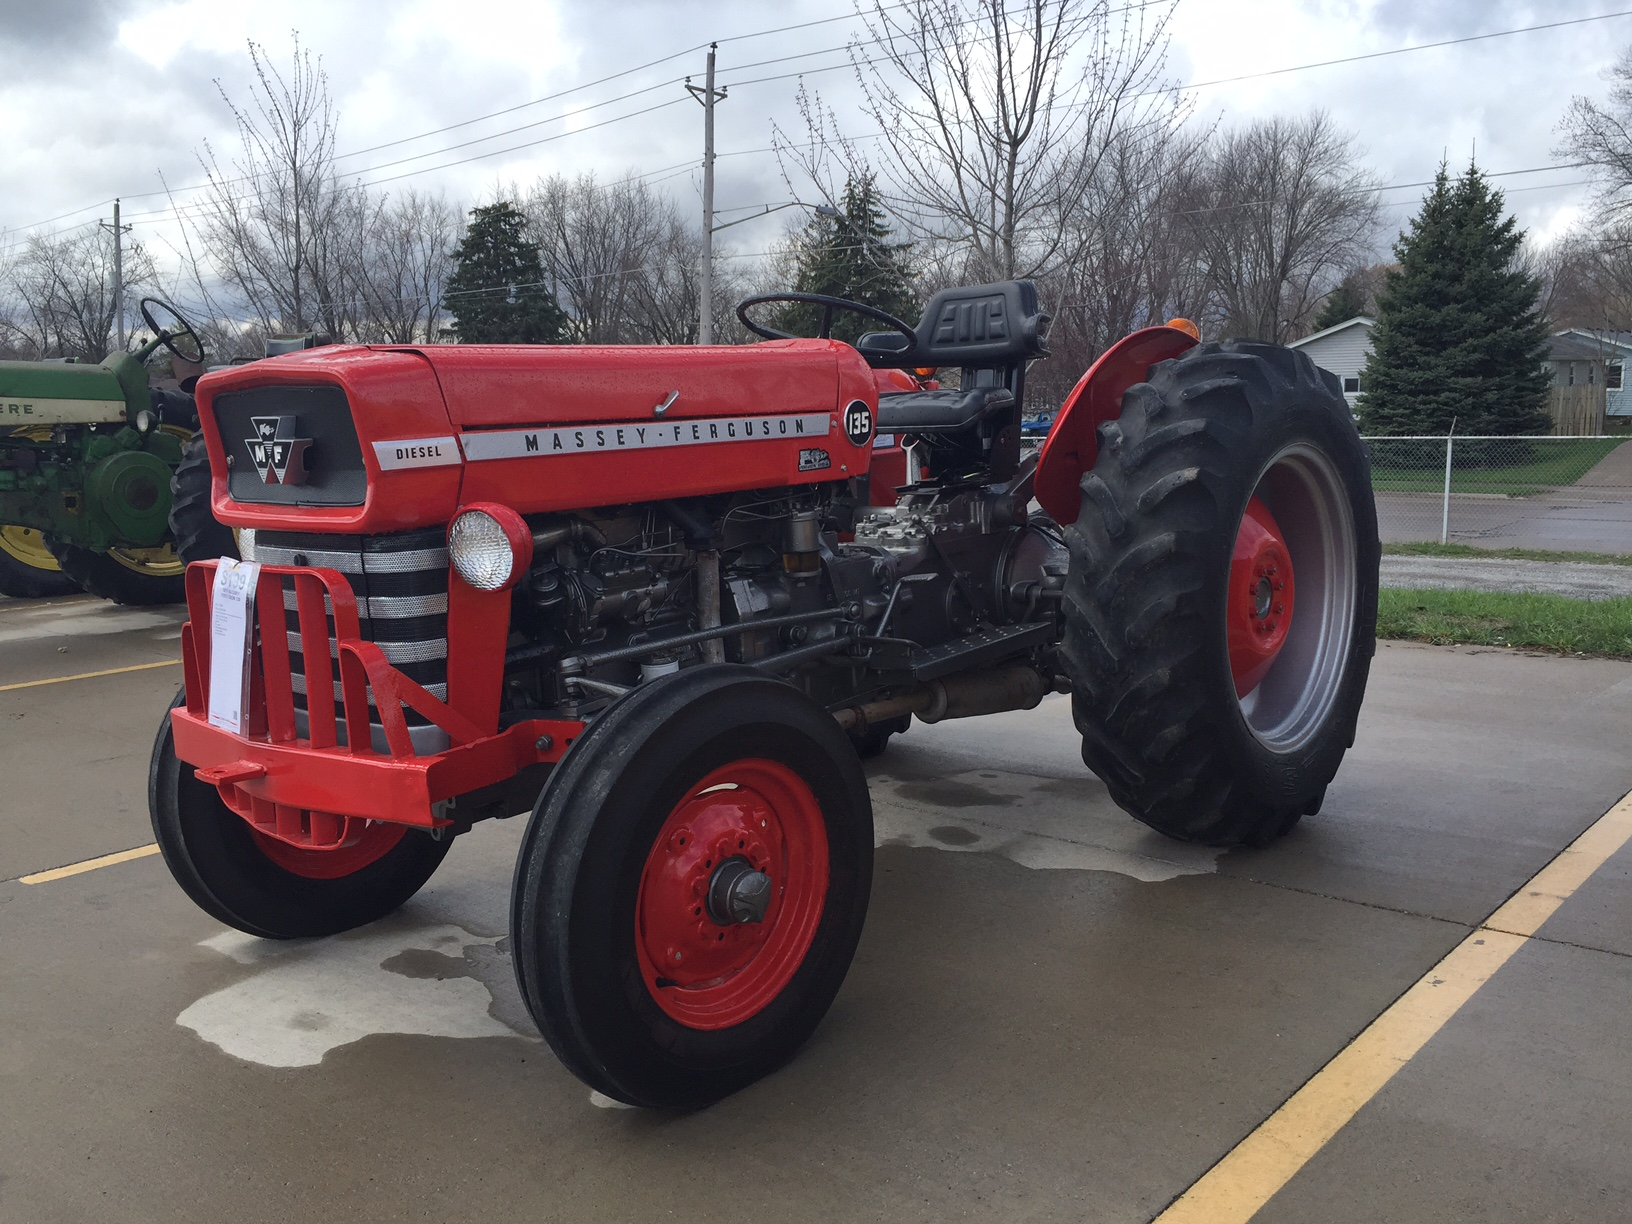 The Best Tractor Massey Ferguson Ever Made - Antique Tractor BlogAntique Tractor Blog